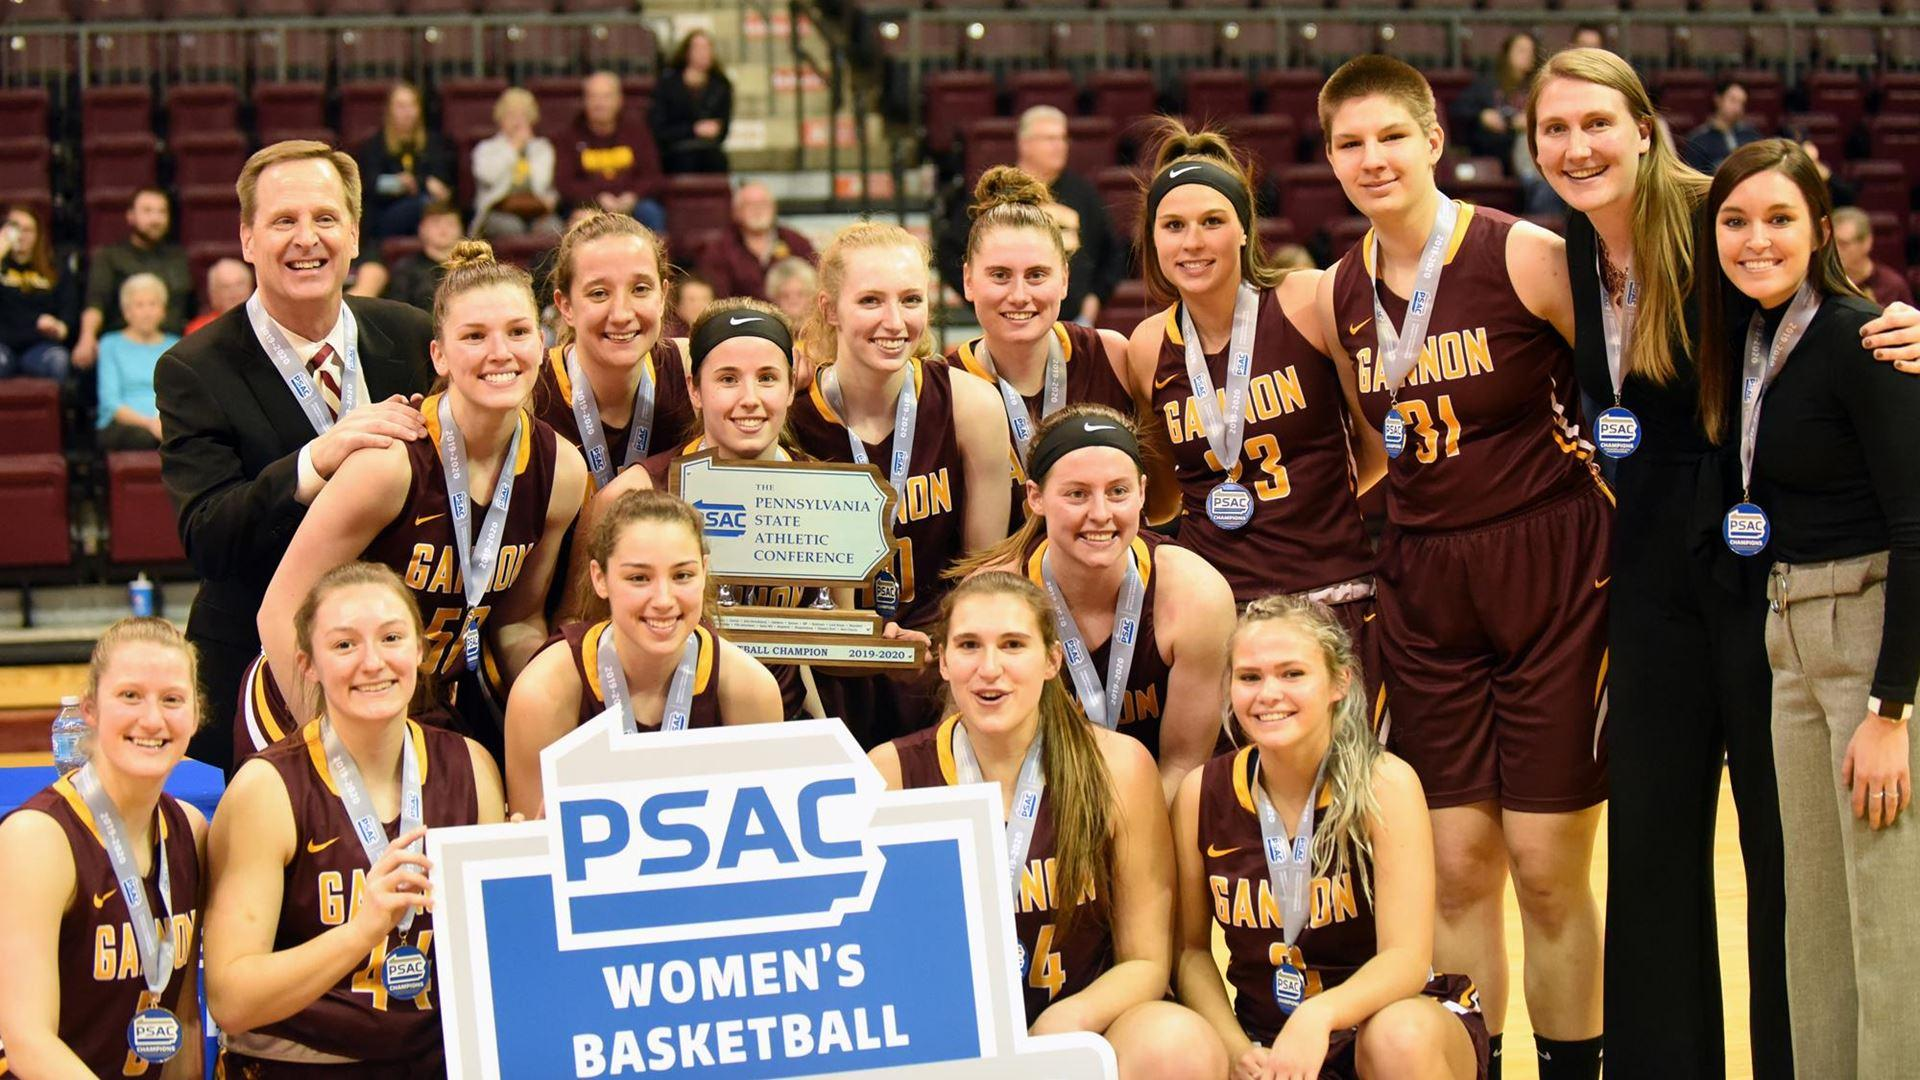 Women win PSAC title, advance to the NCAA Atlantic Regional